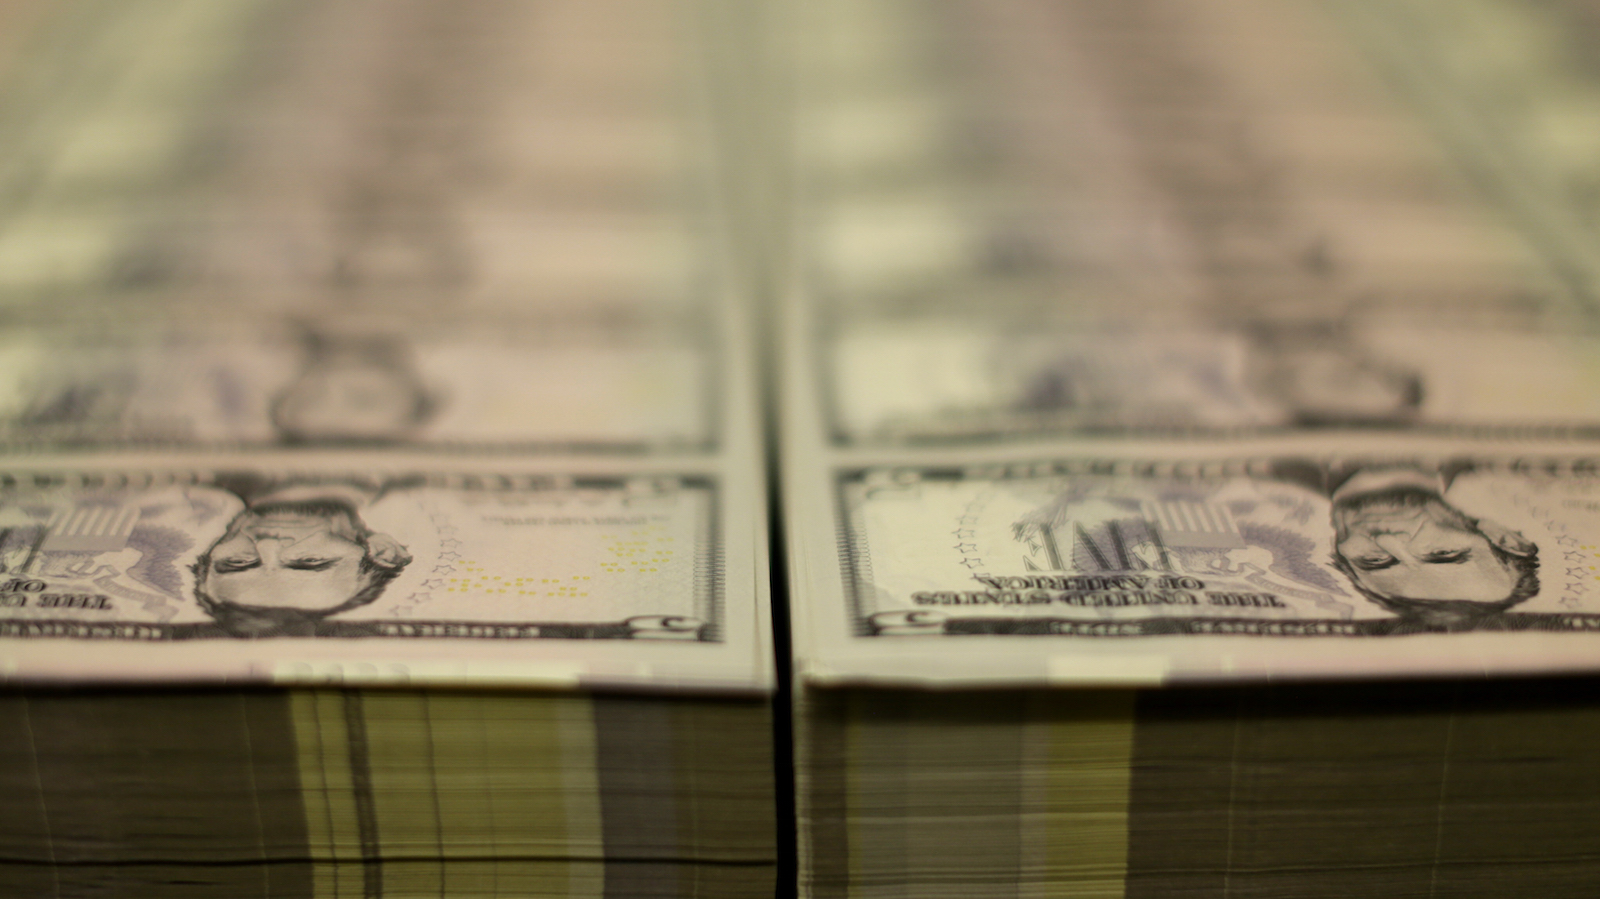 Stacks of Lincoln five dollar bill are seen  at the Bureau of Engraving and Printing in Washington